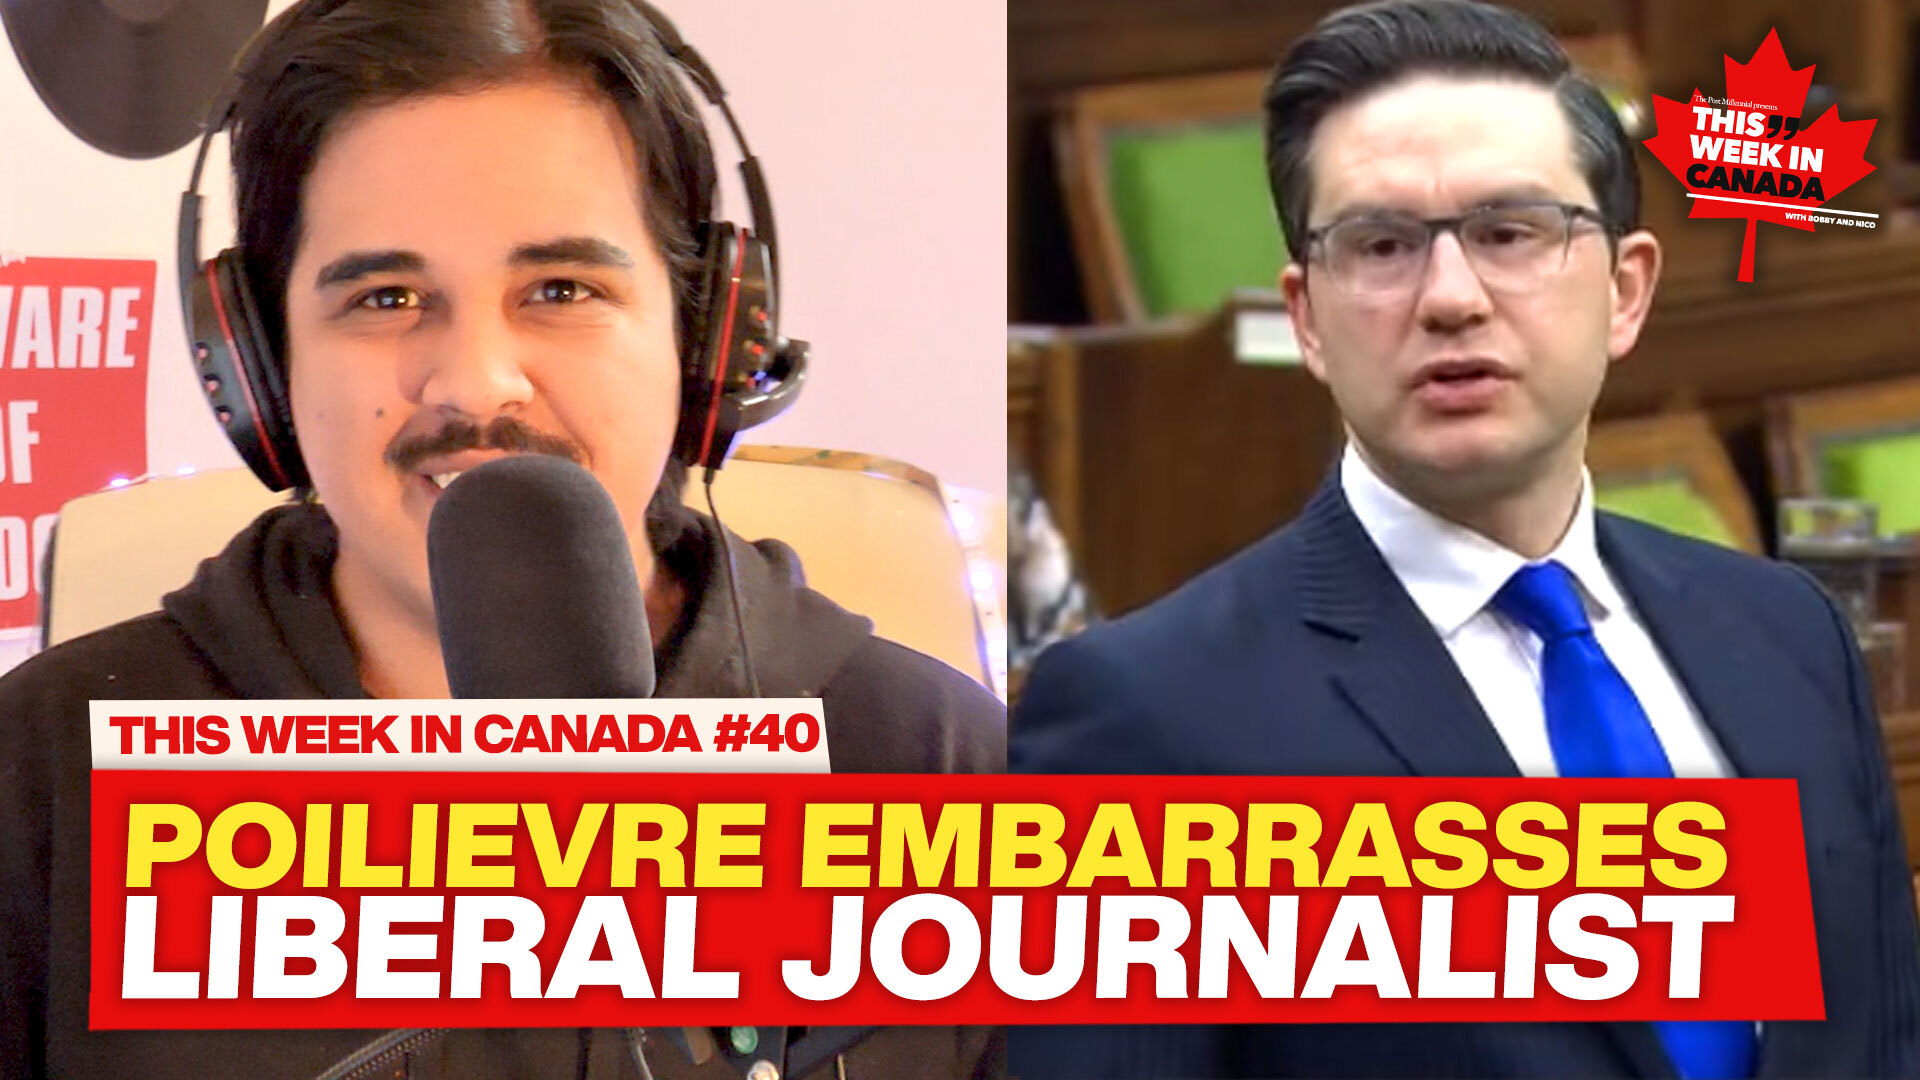 Poilievre embarrasses Liberal journalist - This Week in Canada #40